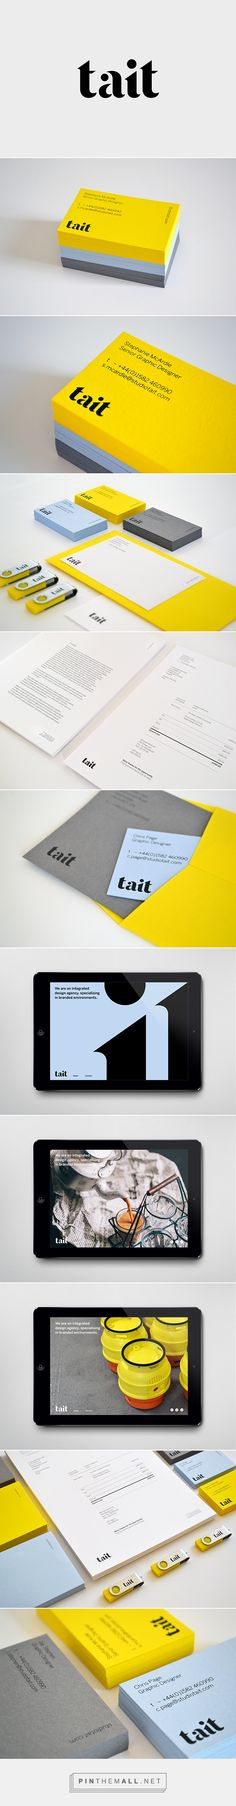 Tait on Behance